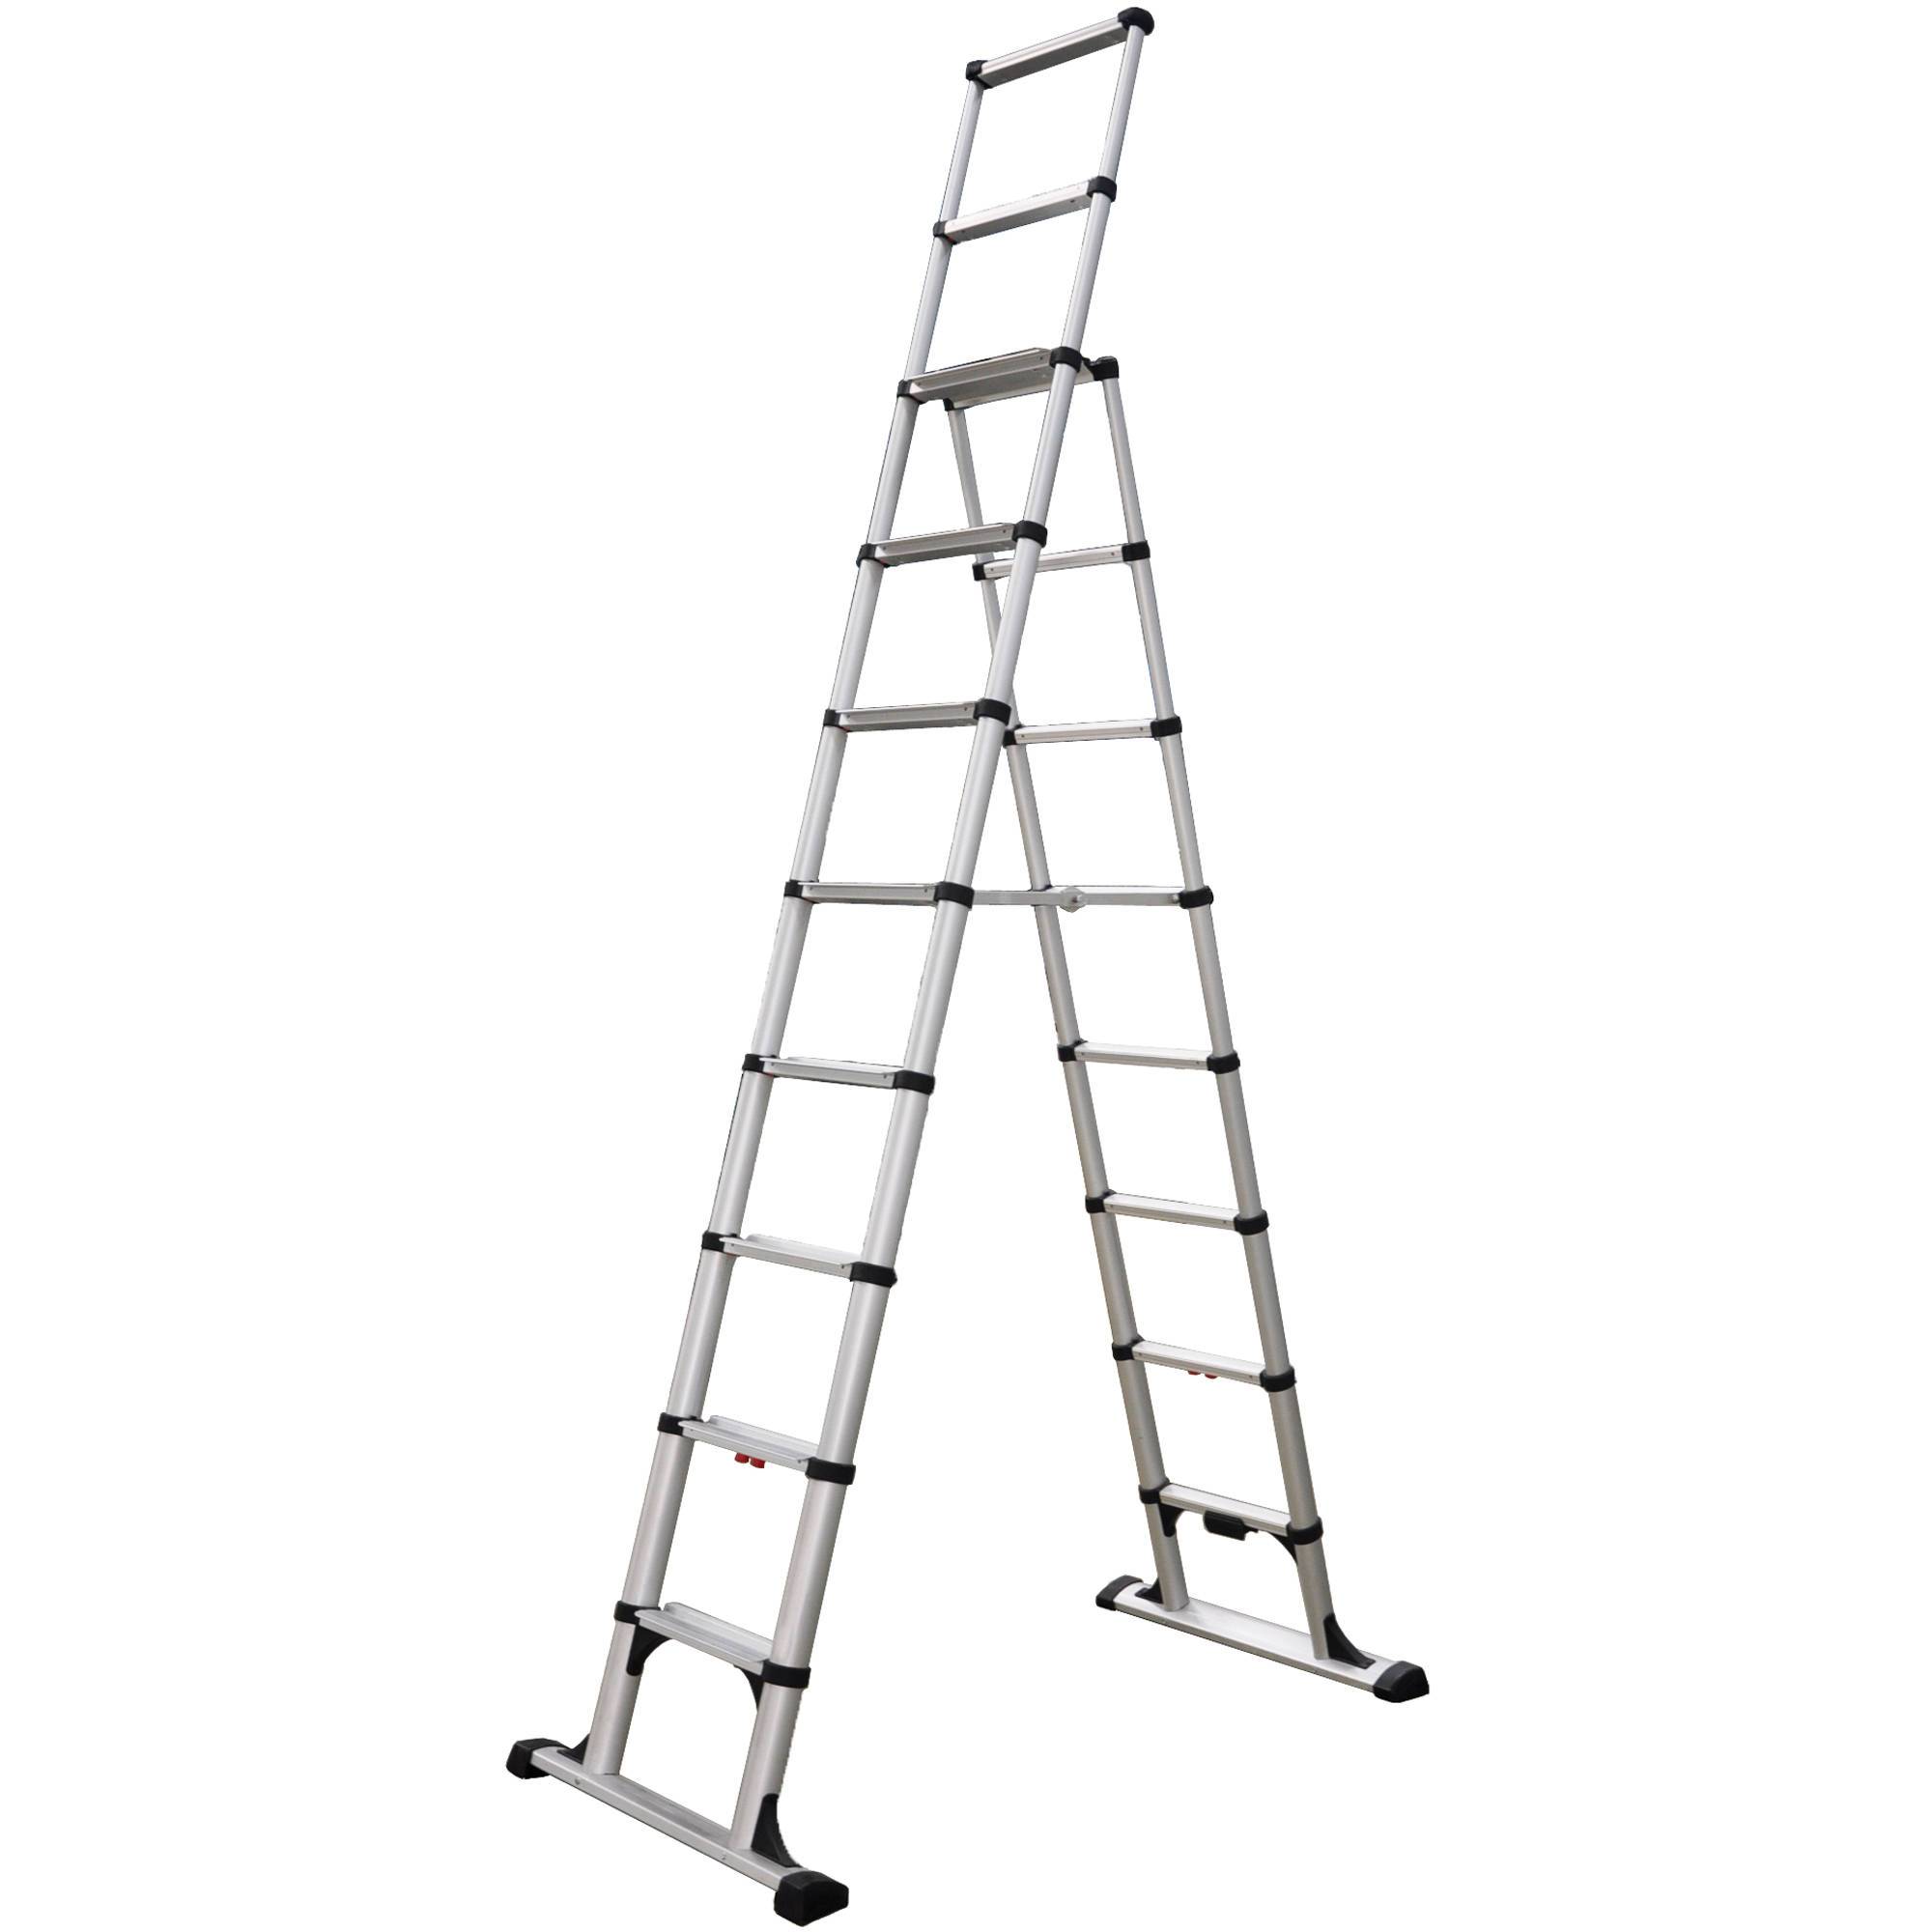 Studio Ladders | B&H Photo Video